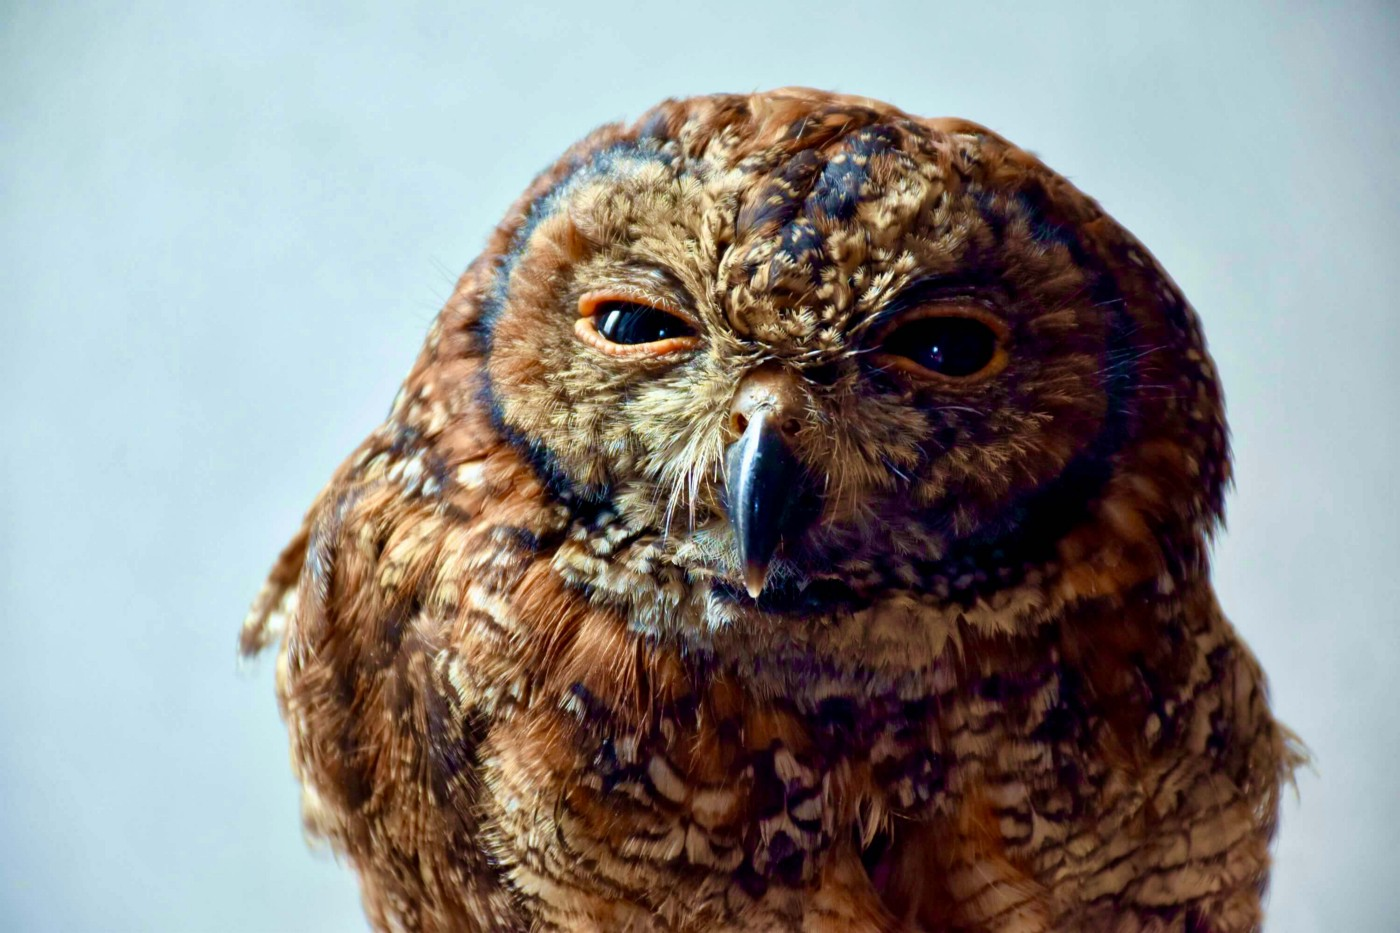 A very judgemental looking owl… judging and plotting.